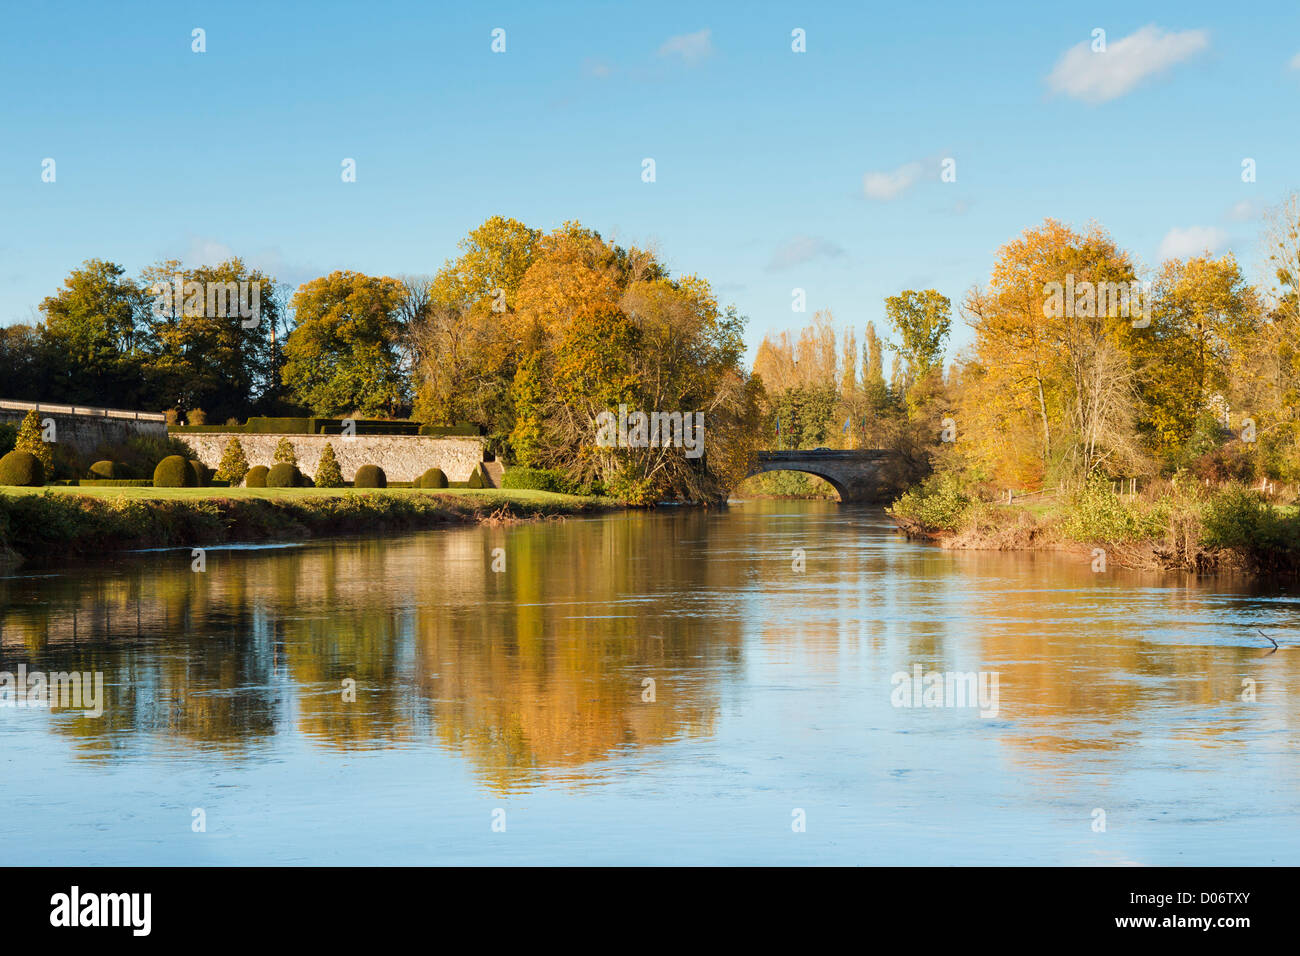 River near traditional French garden, France, Europe Stock Photo ...